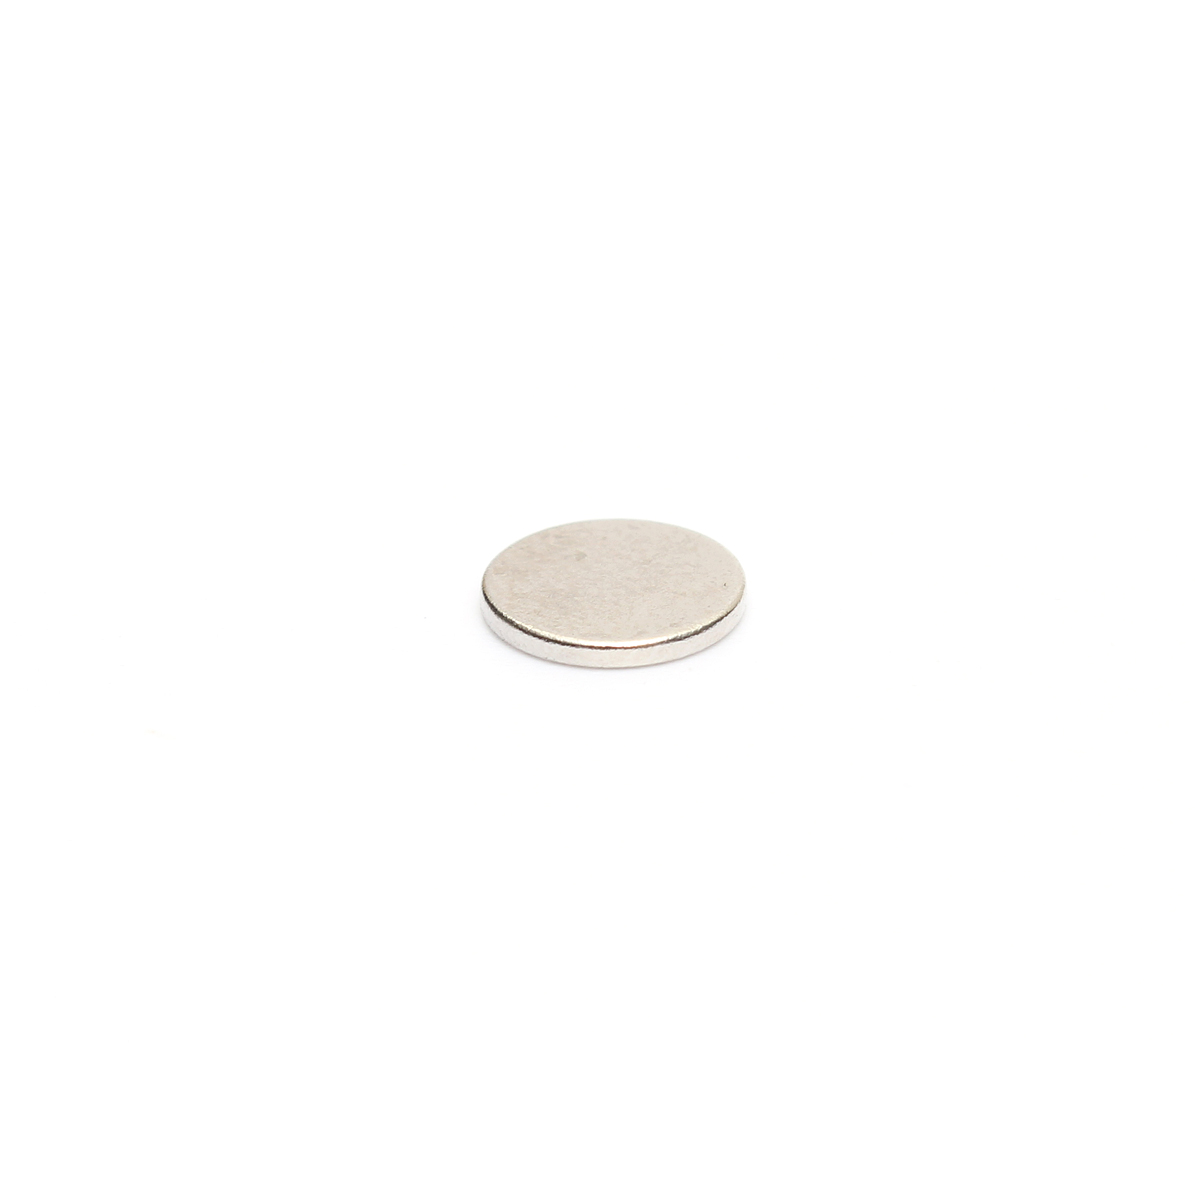 50x N40 Strong Disc Magnets Small Round Fridge Industrial